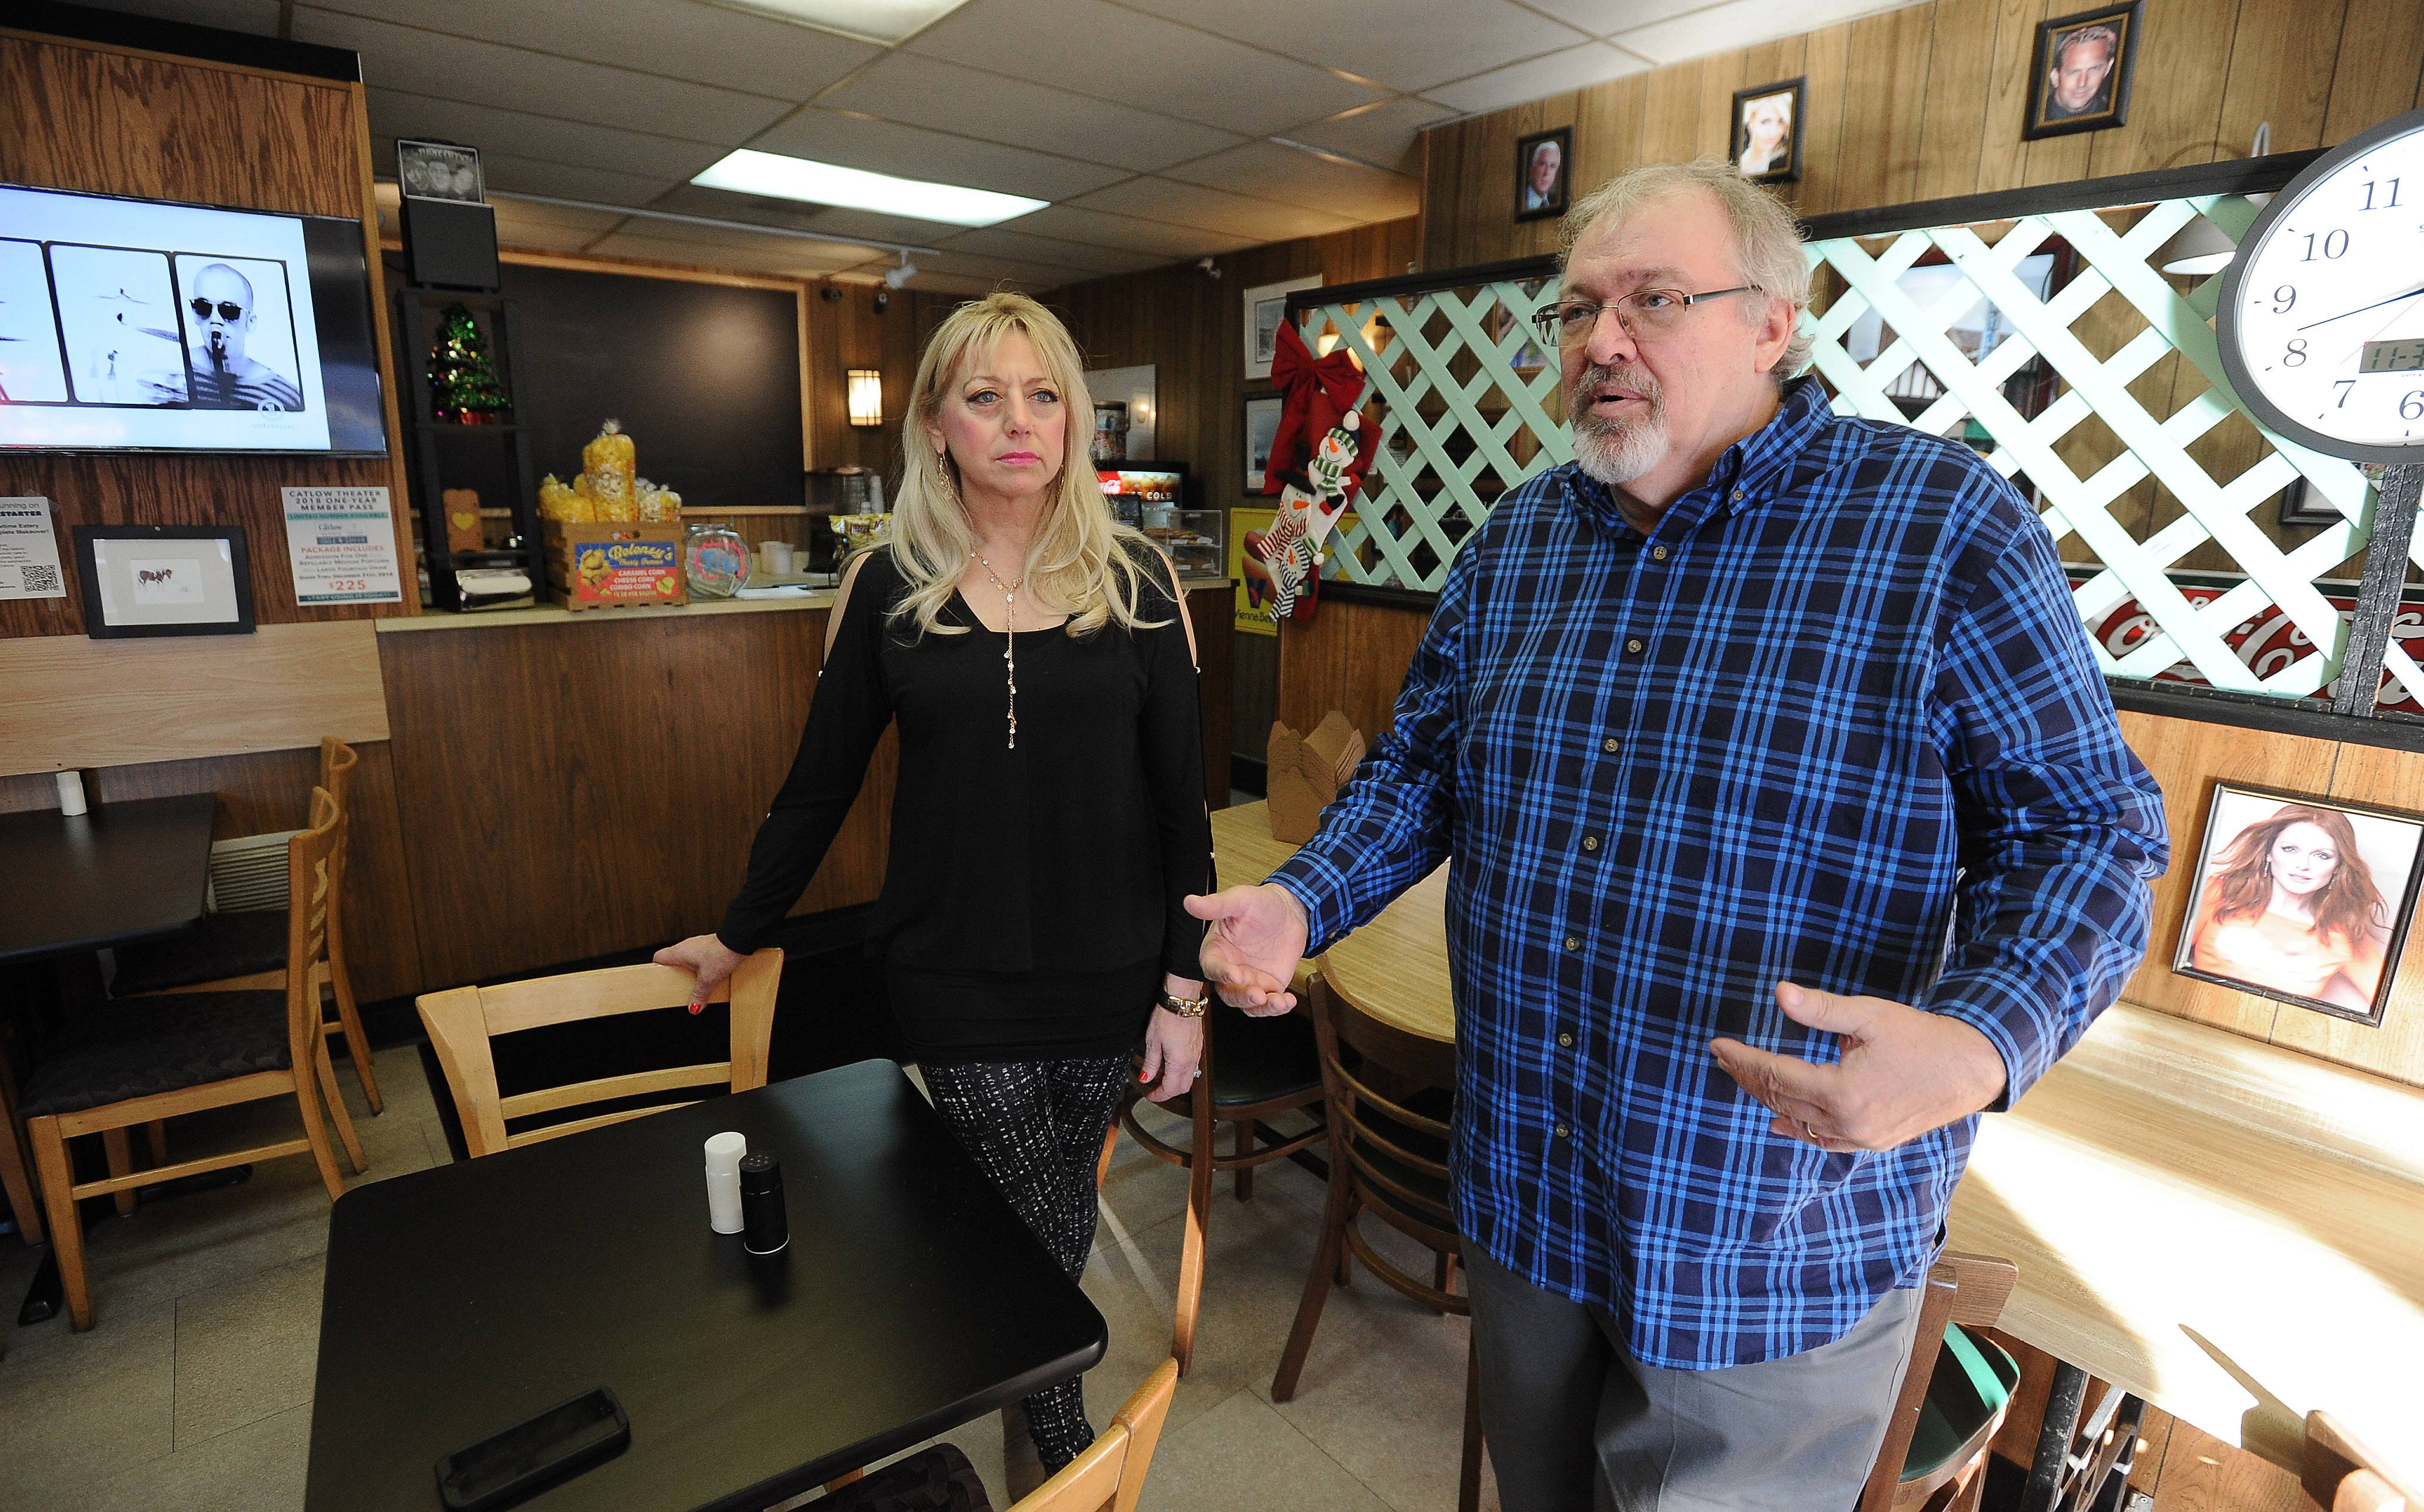 Tim O' Connor, owner of the Catlow Theater and the new adjacent Showtime Eatery in downtown Barrington, with his wife, Laura, in the restaurant. An online campaign fell well short of its goal in an effort to help finance proposed upgrades to Showtime.